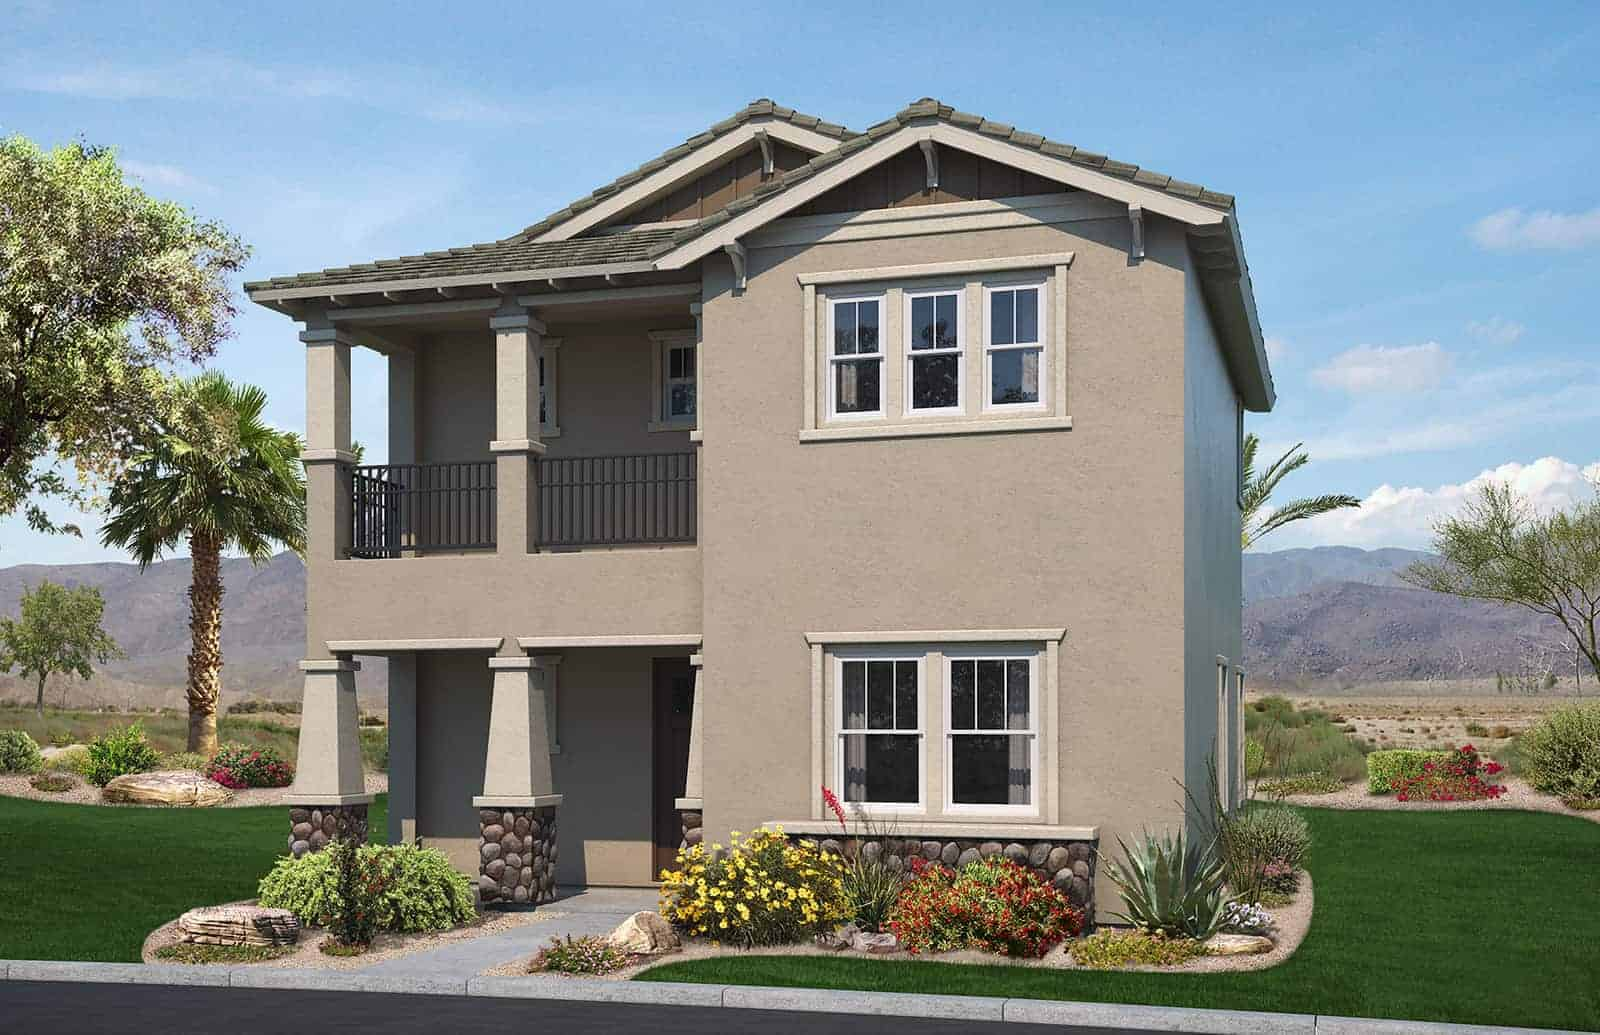 Cottages at Verrado   Residence 4   Plan A